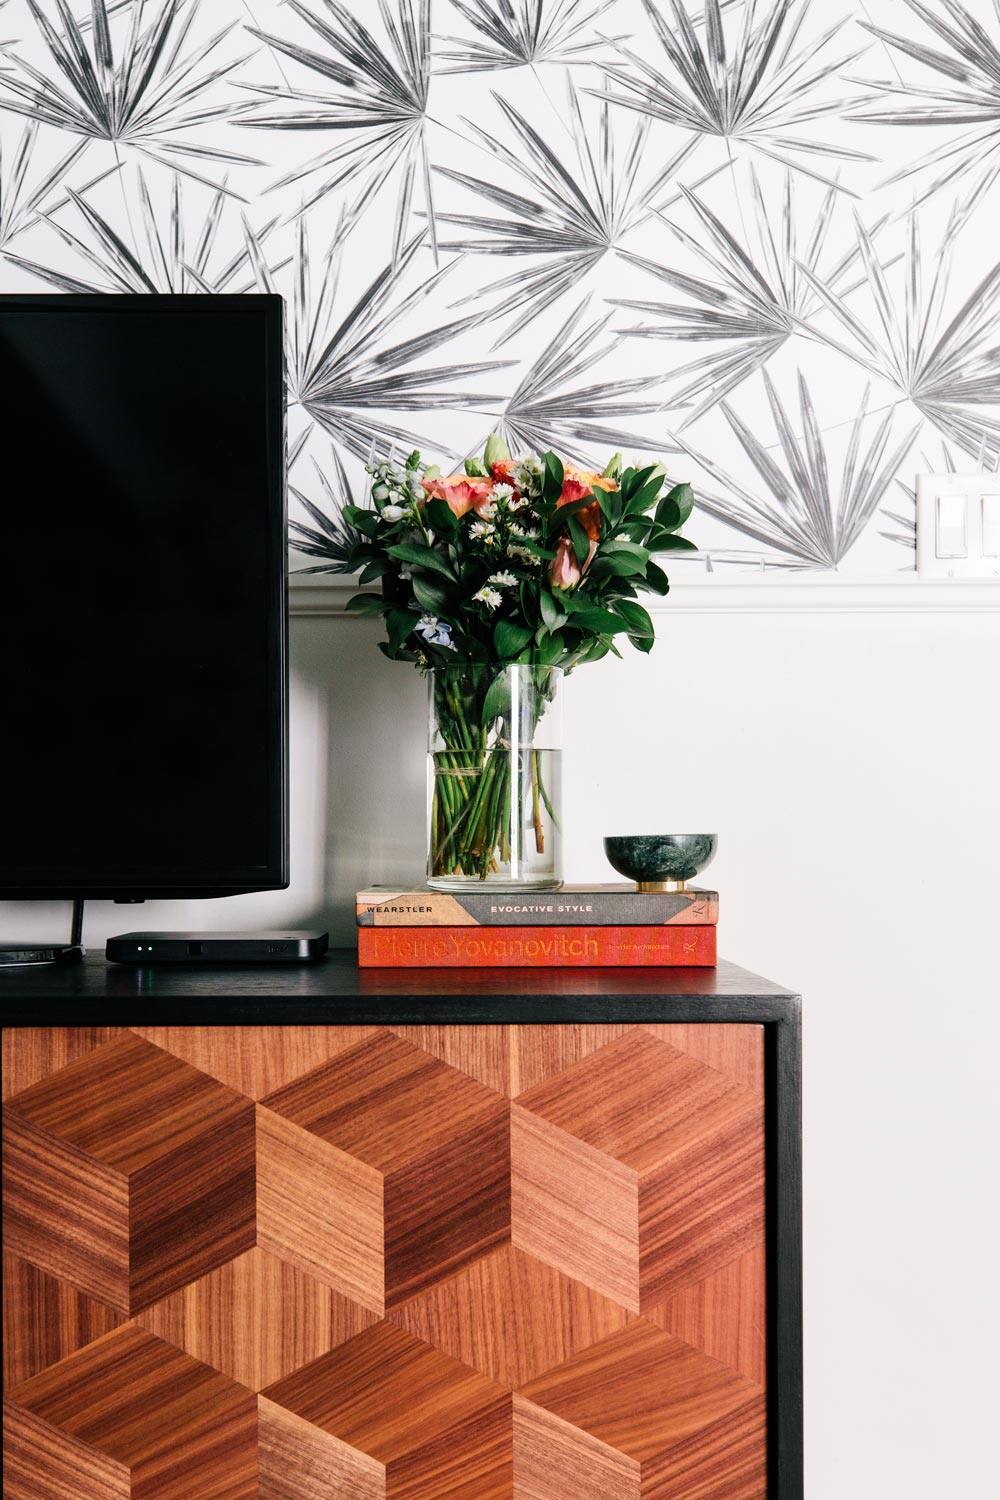 Tropical wallpaper design inspiration for your own home makeover